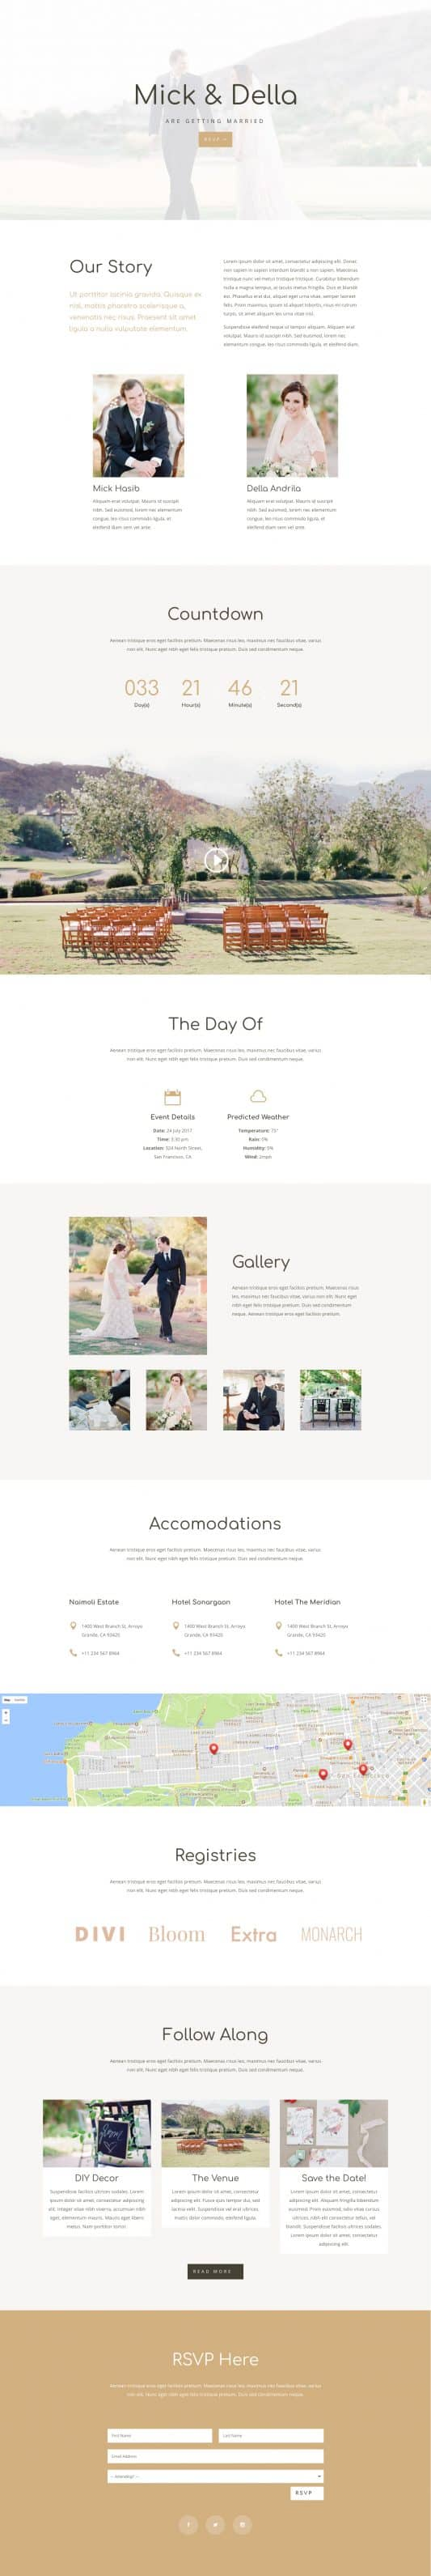 The Wedding Page Style: Homepage Design 1